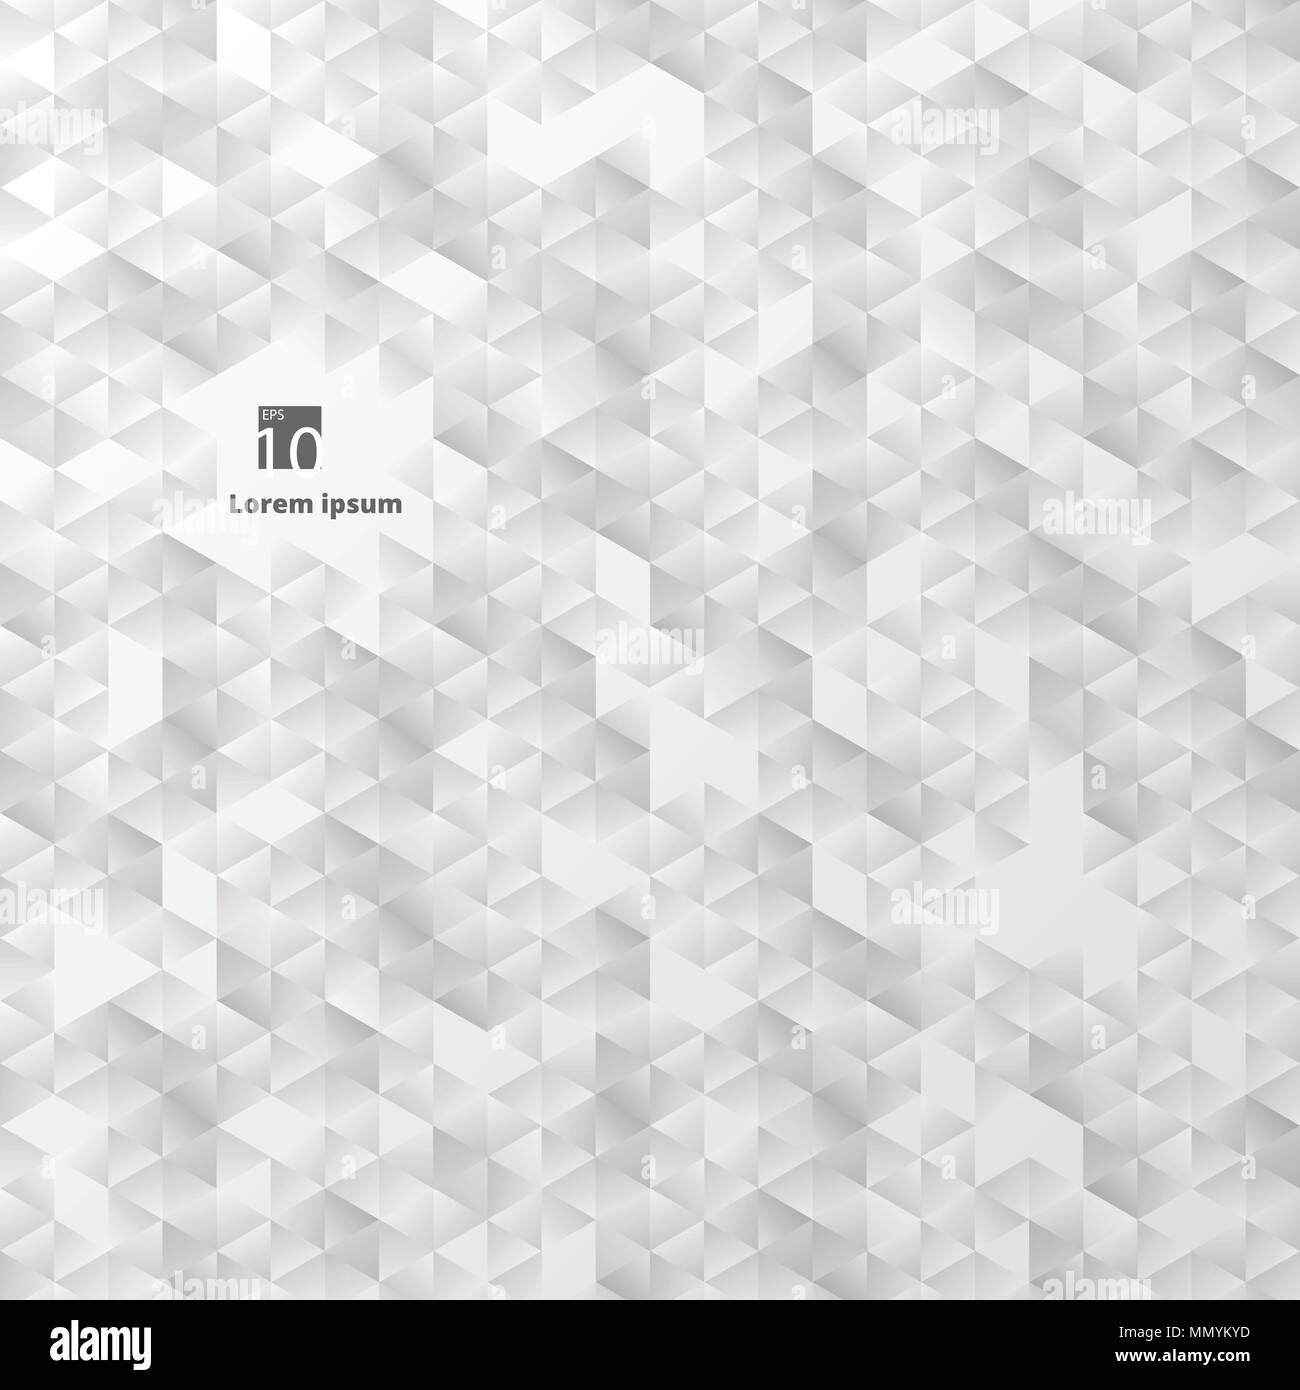 abstract of plain geometric triangle in grey gradient color background, illustration vector eps10 - Stock Image